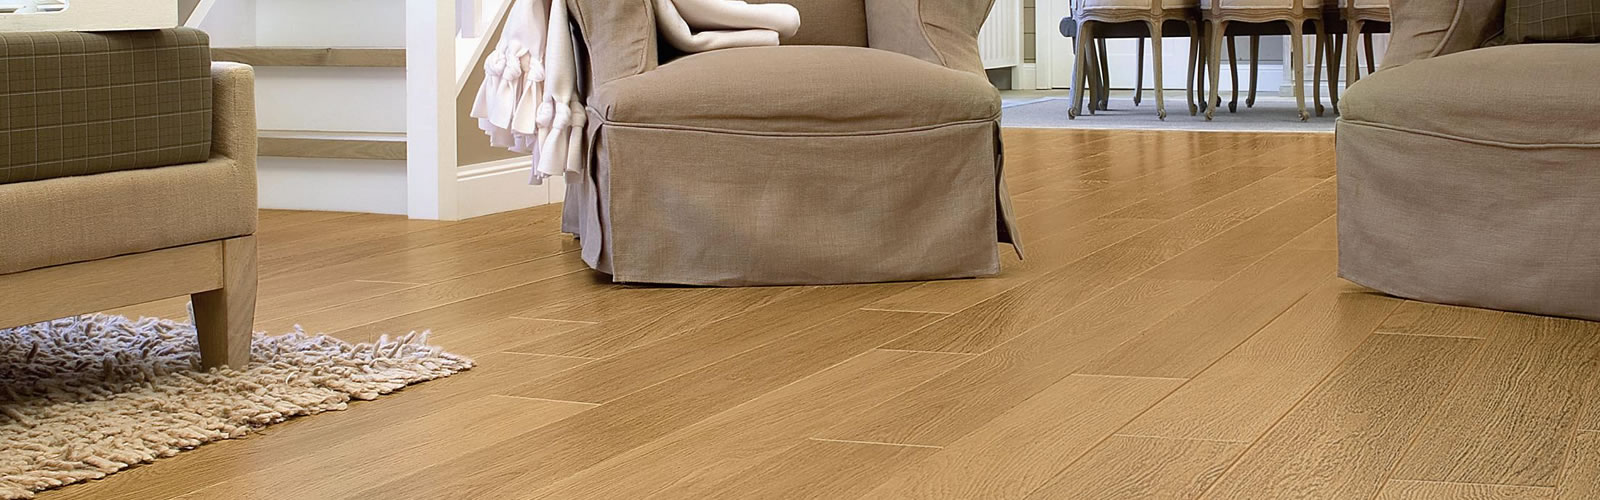 Laminate Flooring Adelaide By Carpet Selection Centre